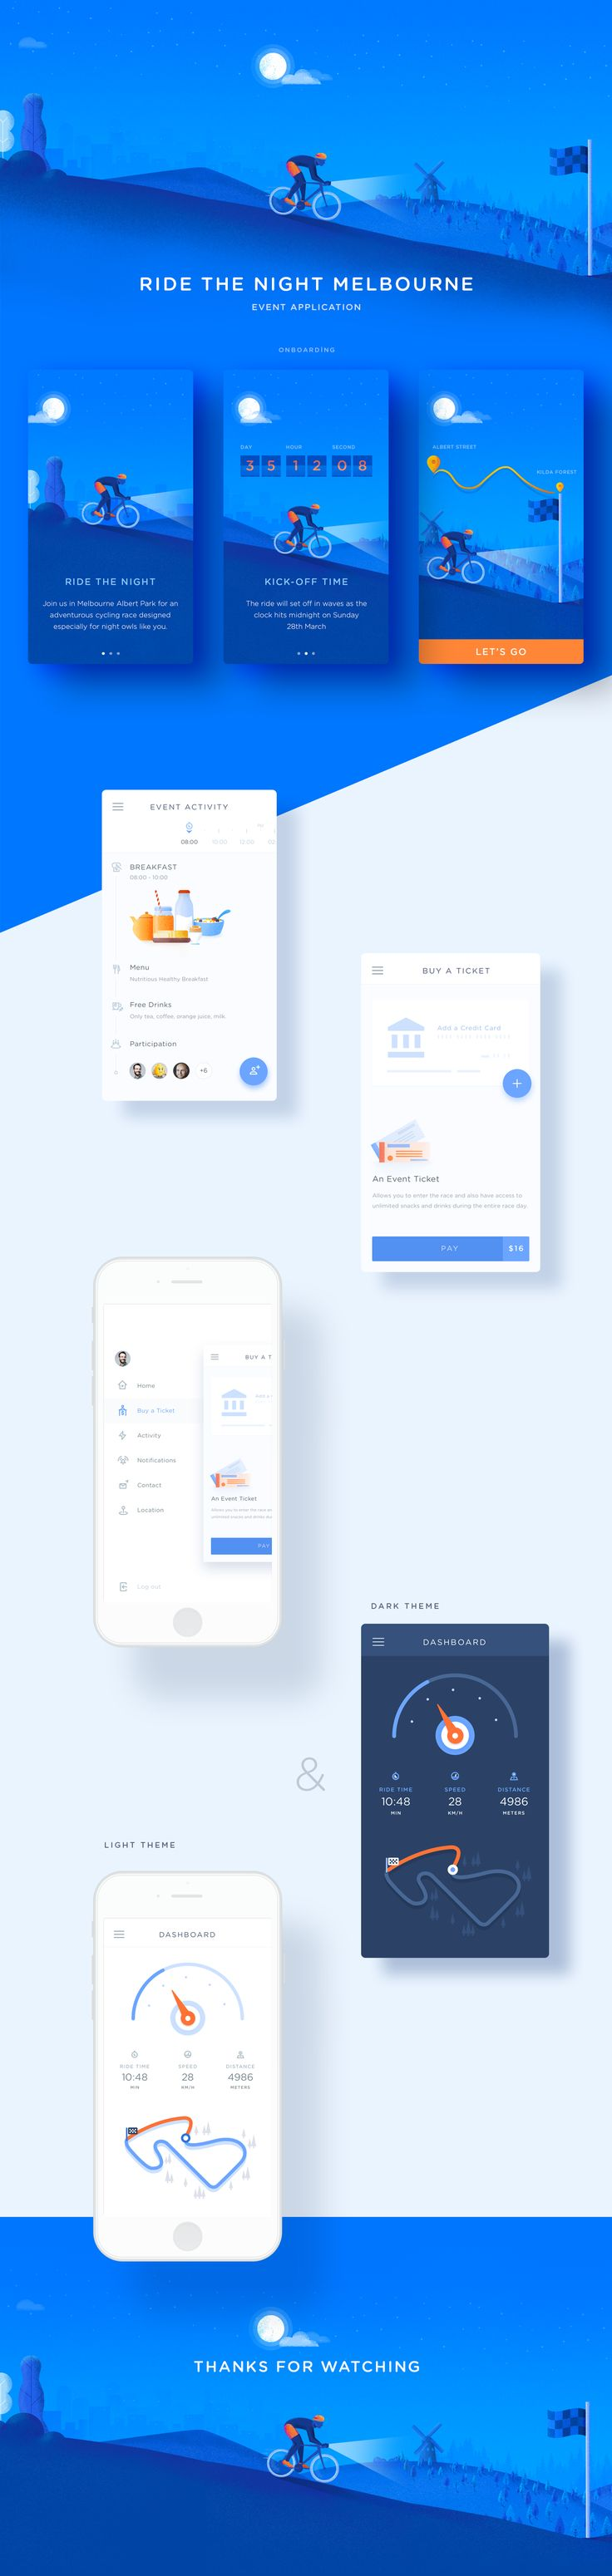 find this pin and more on apps design pattern uiux - Ui Design Ideas